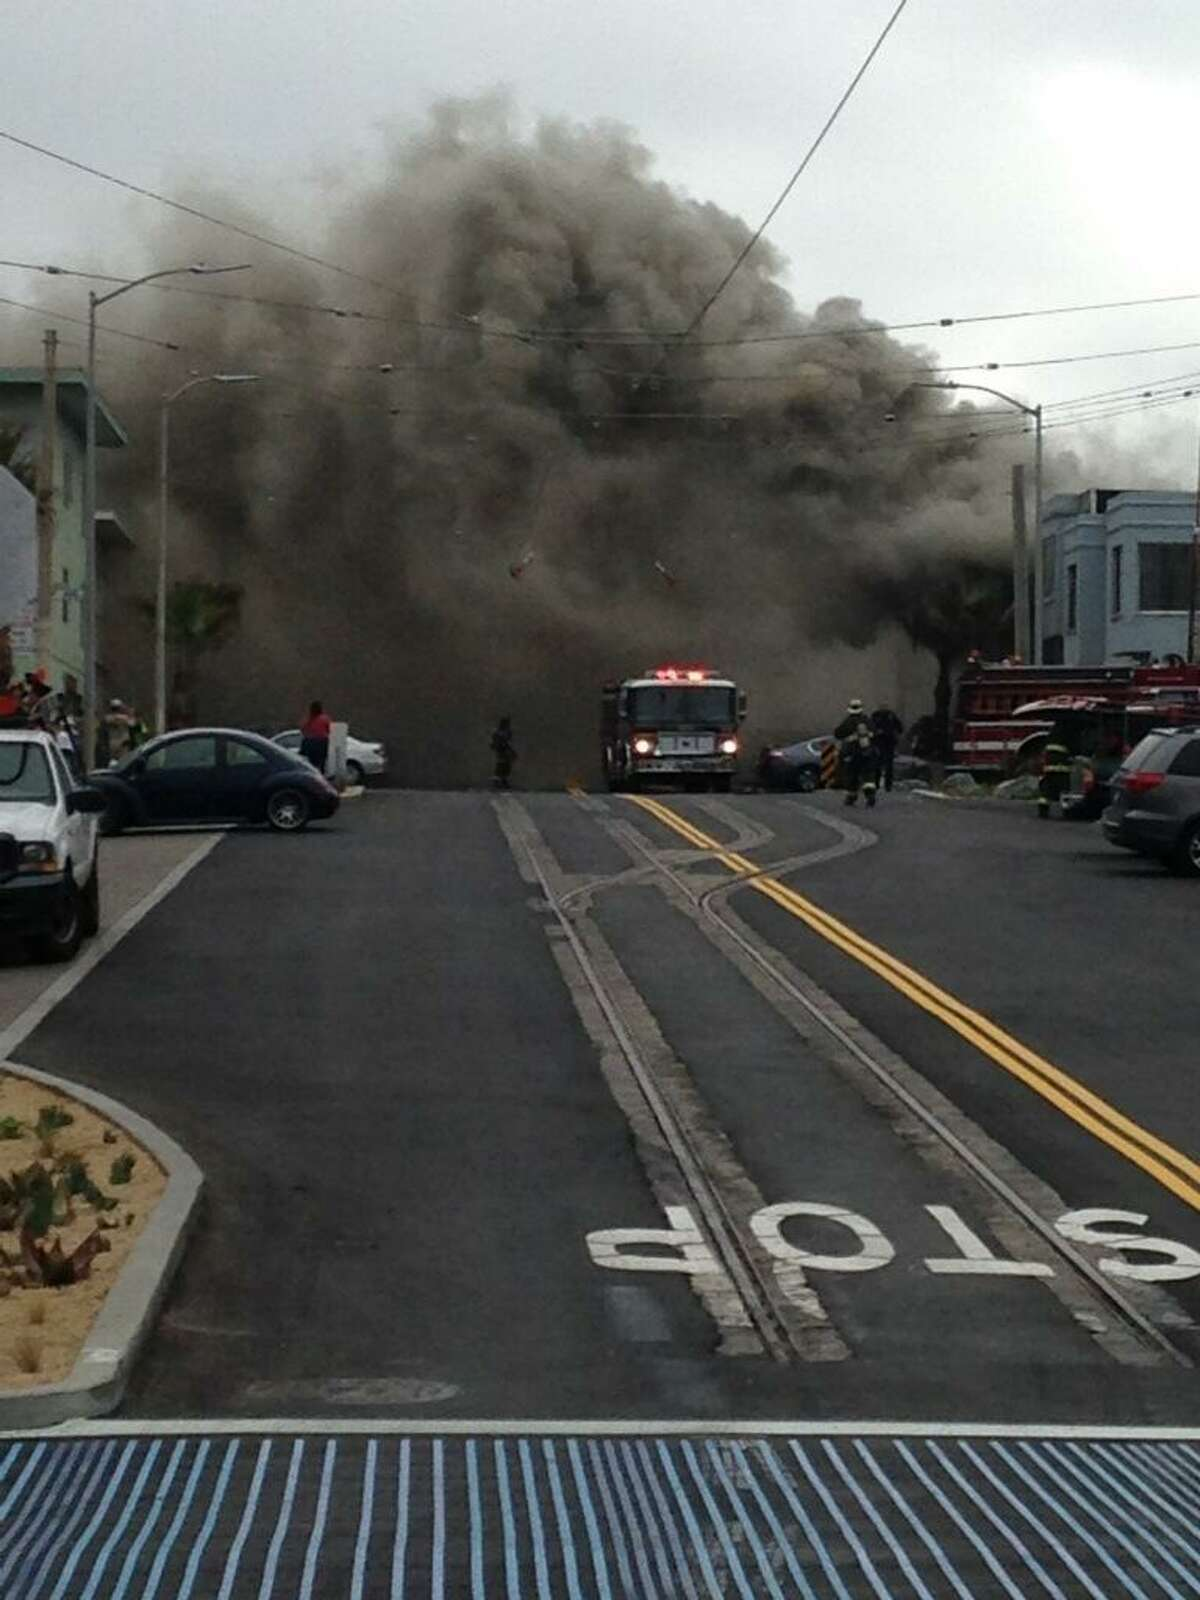 A two-alarm fire broke out at 3633 Taraval St. in San Francisco on August 18, 2015.